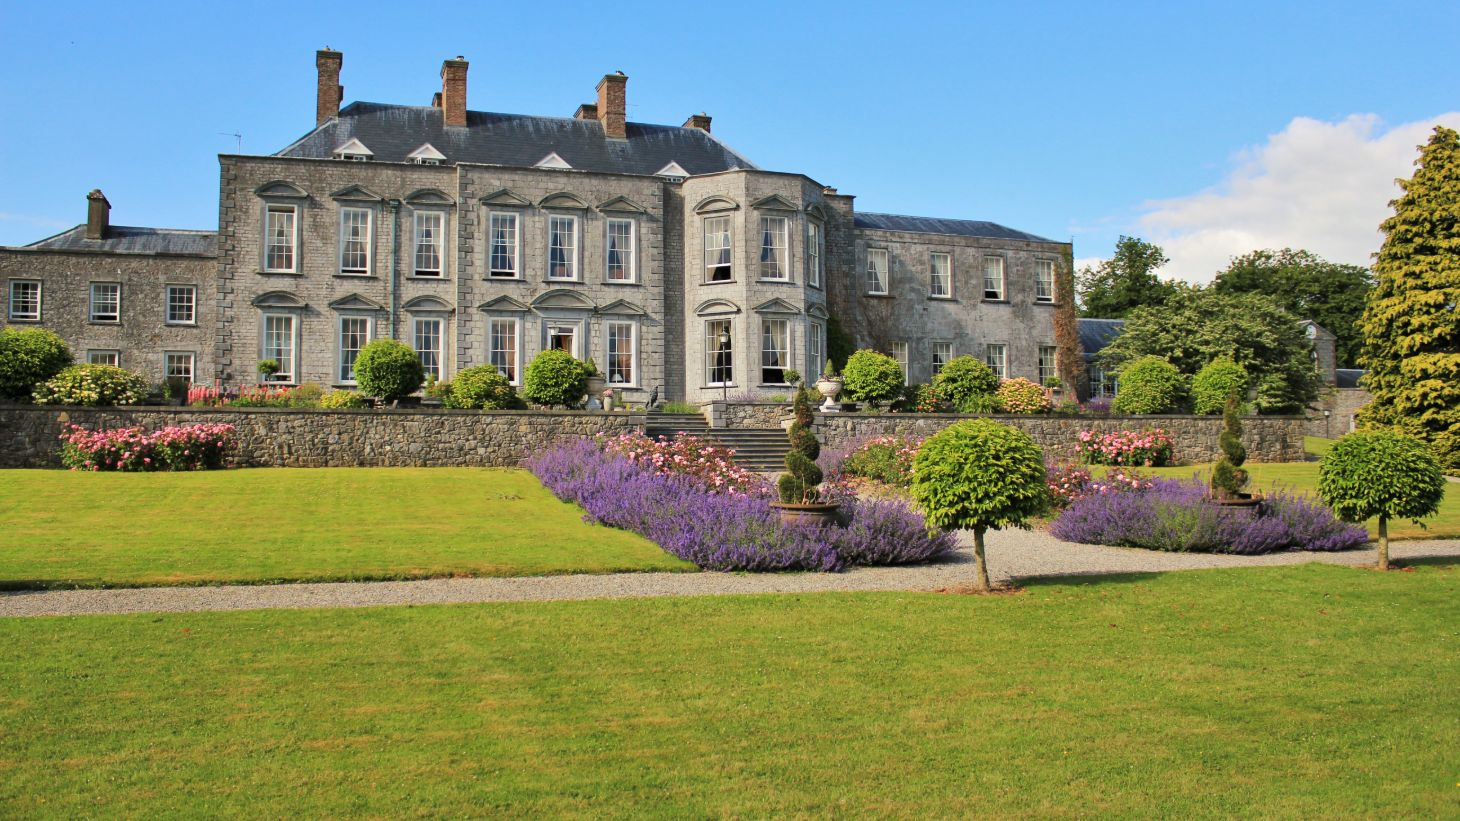 See the beautiful gardens surrounding Castle Durrow.